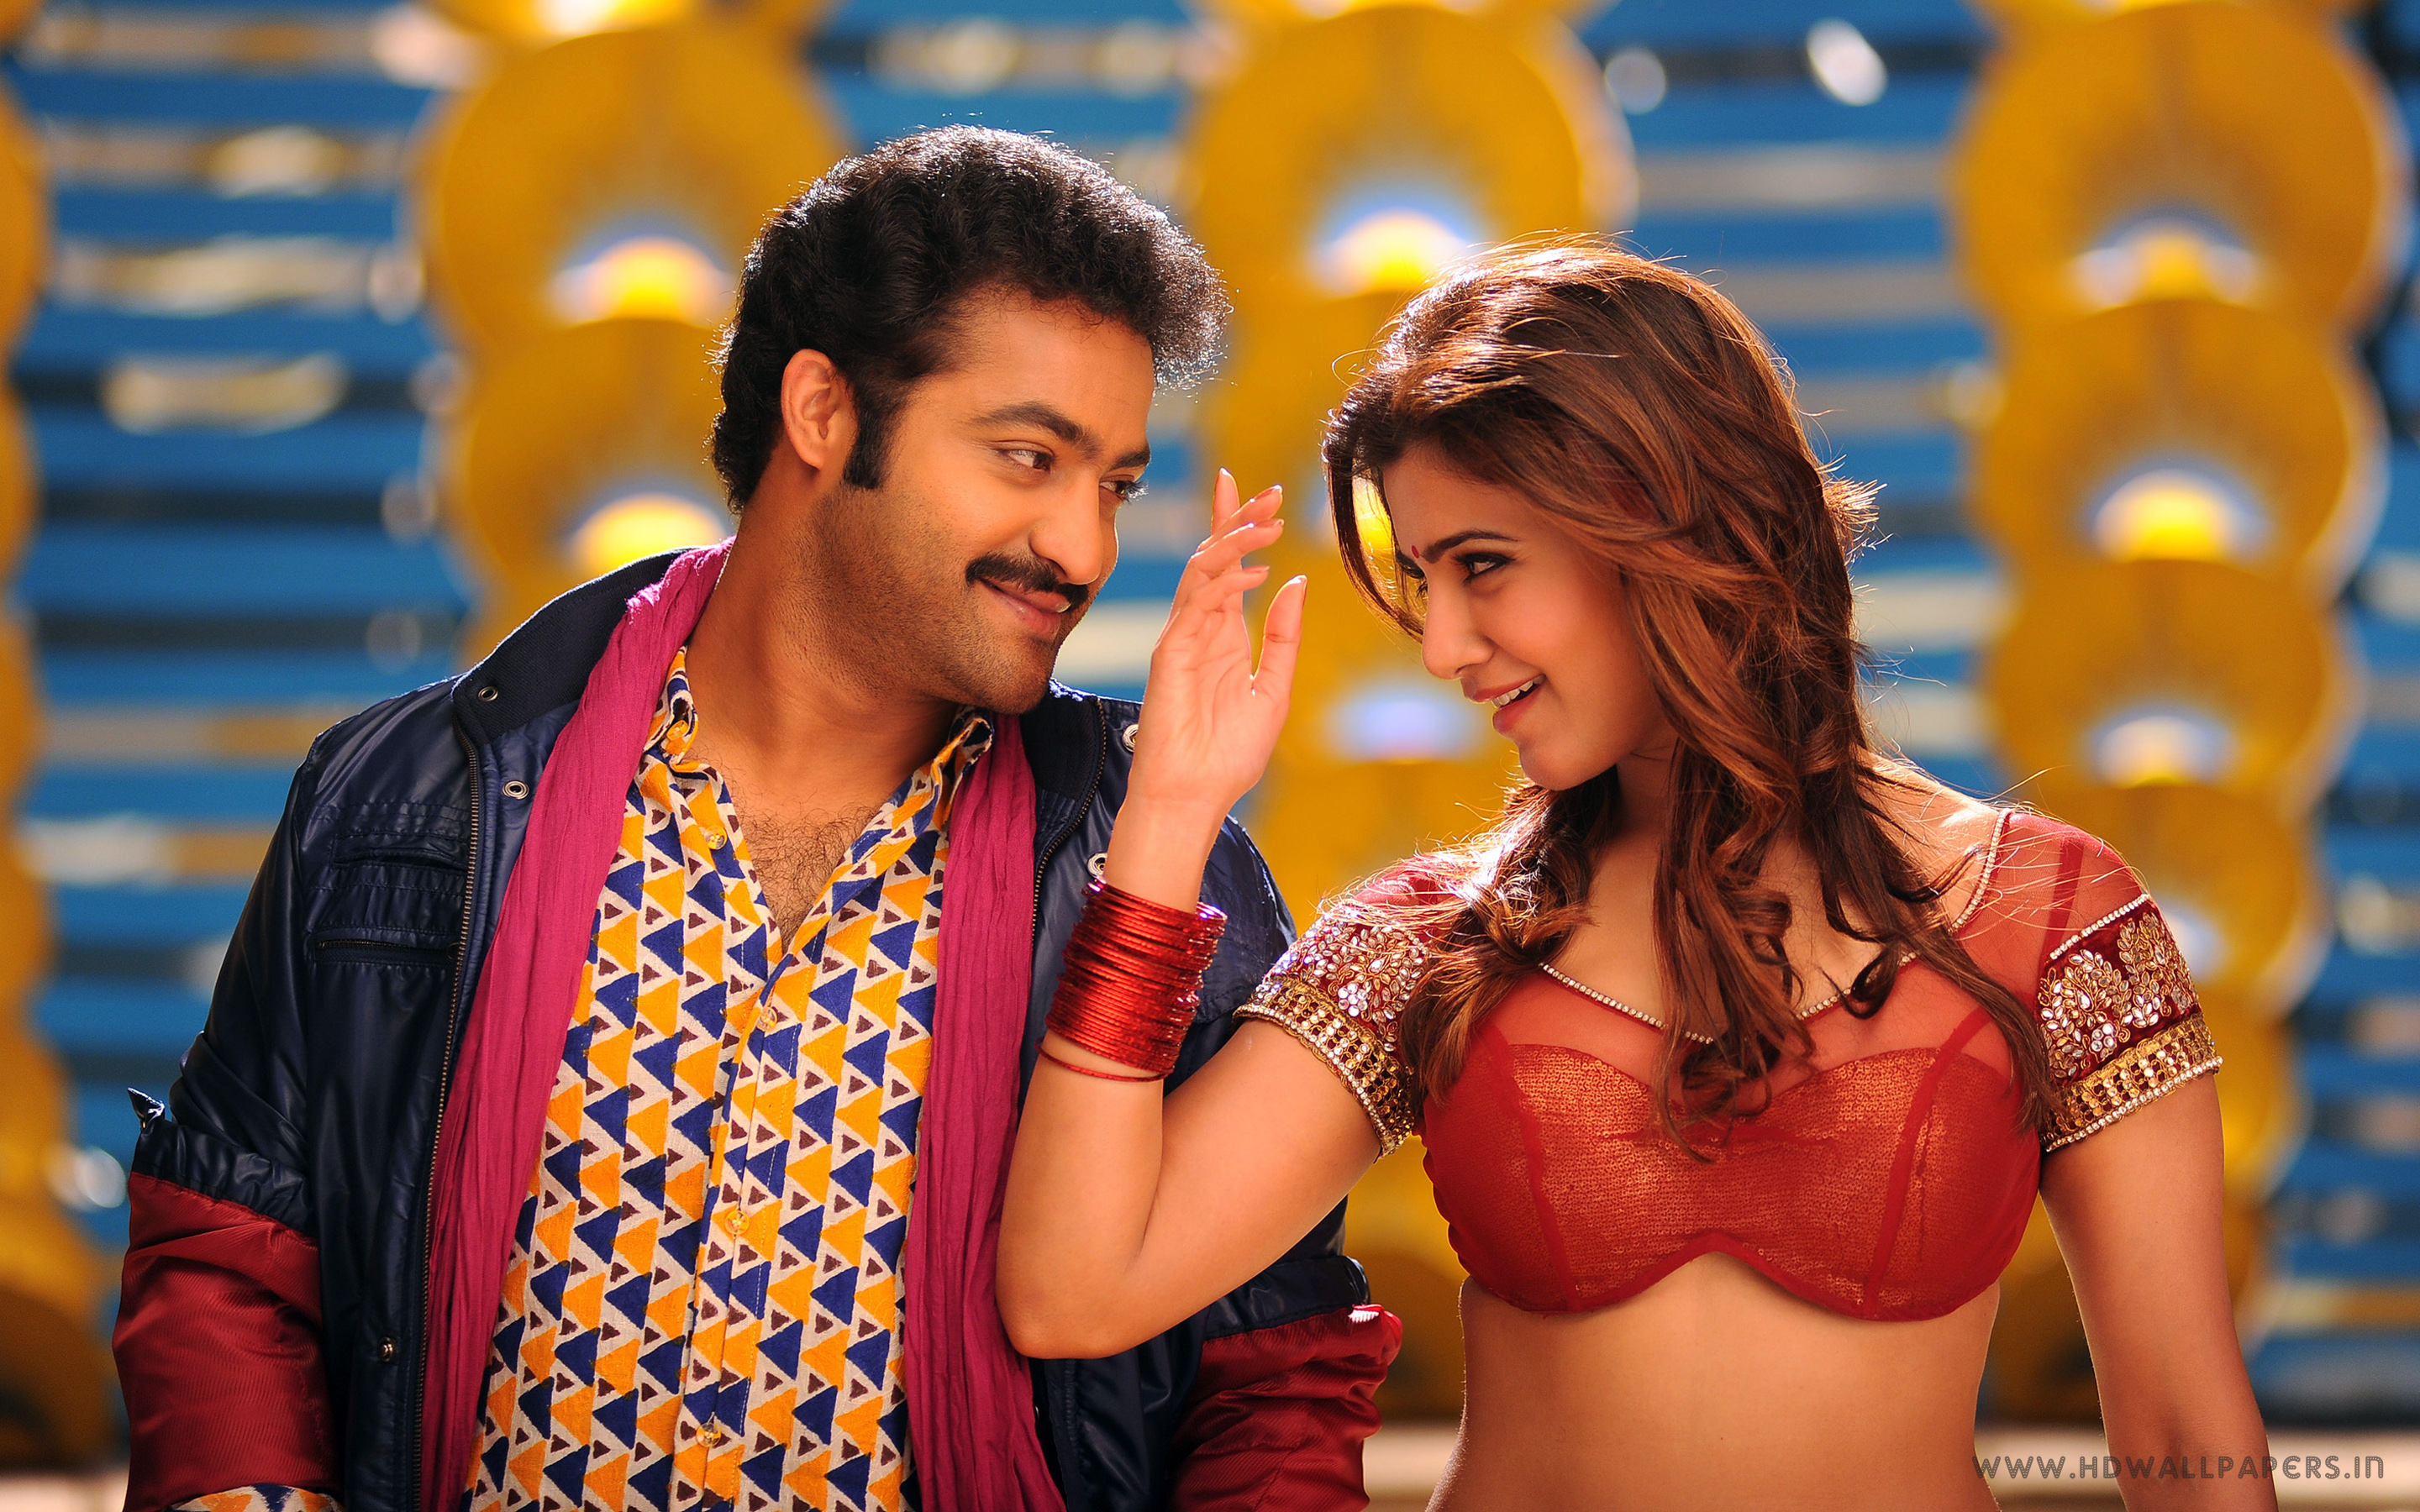 NTR Samantha in Rabhasa 564.35 Kb